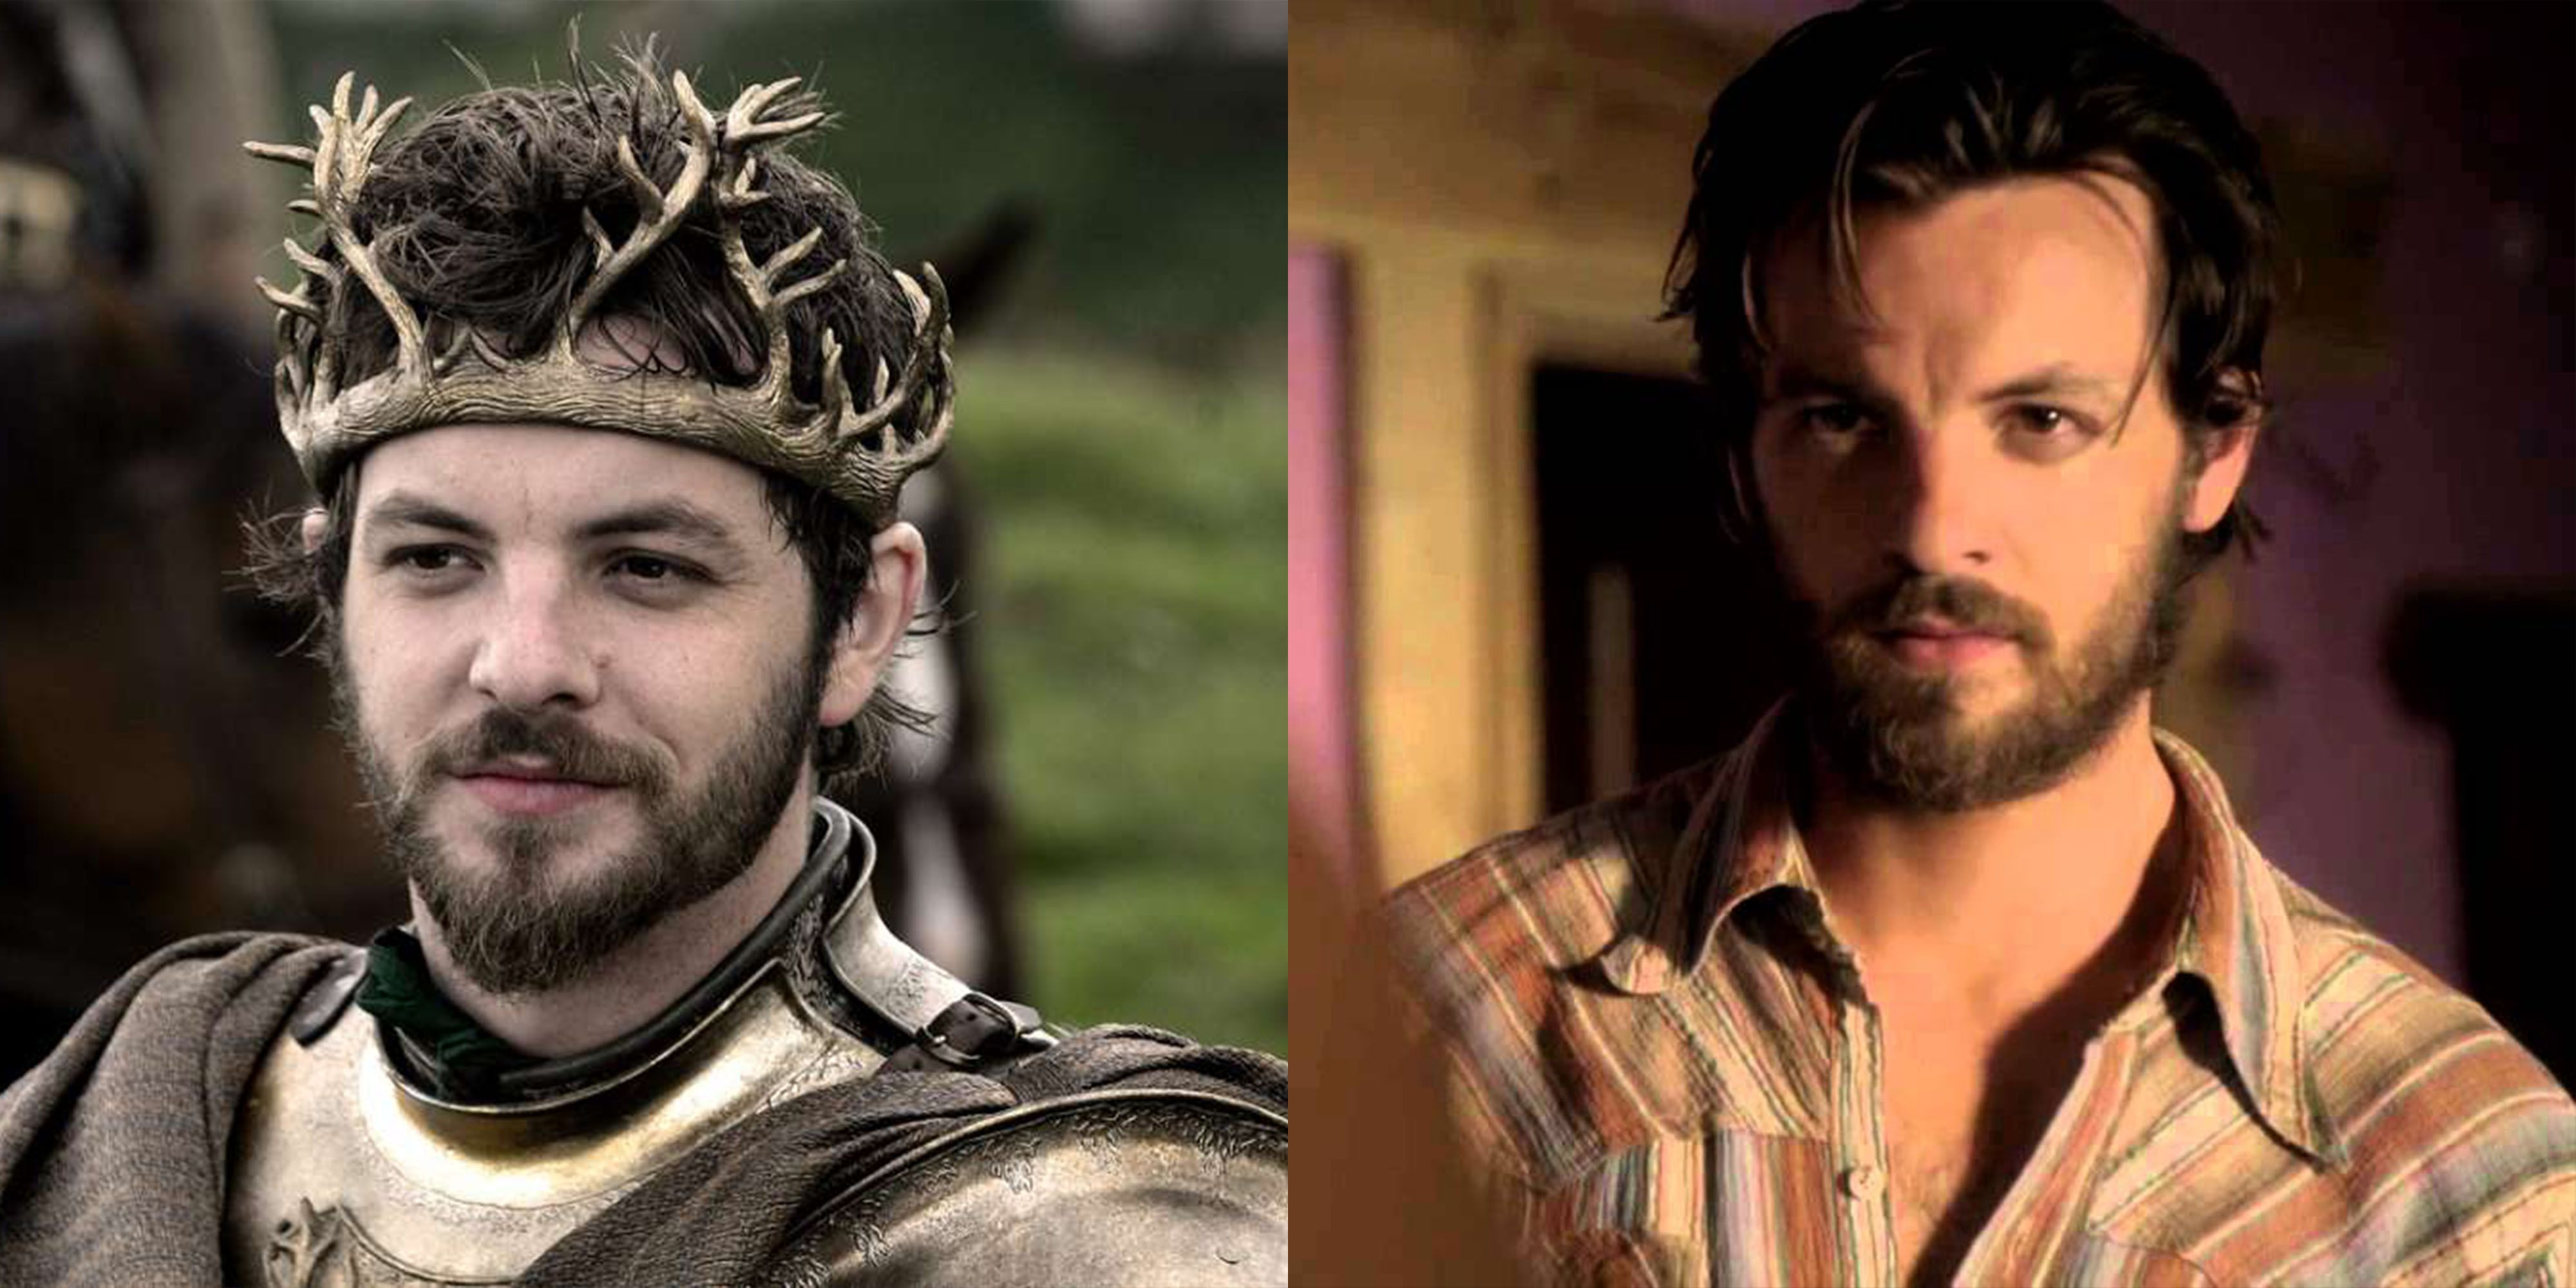 Gethin Anthony Gethin Anthony, who played the youngest Baratheon brother, Renley, went on to play Charles Manson in NBC's Aquarius after Thrones .